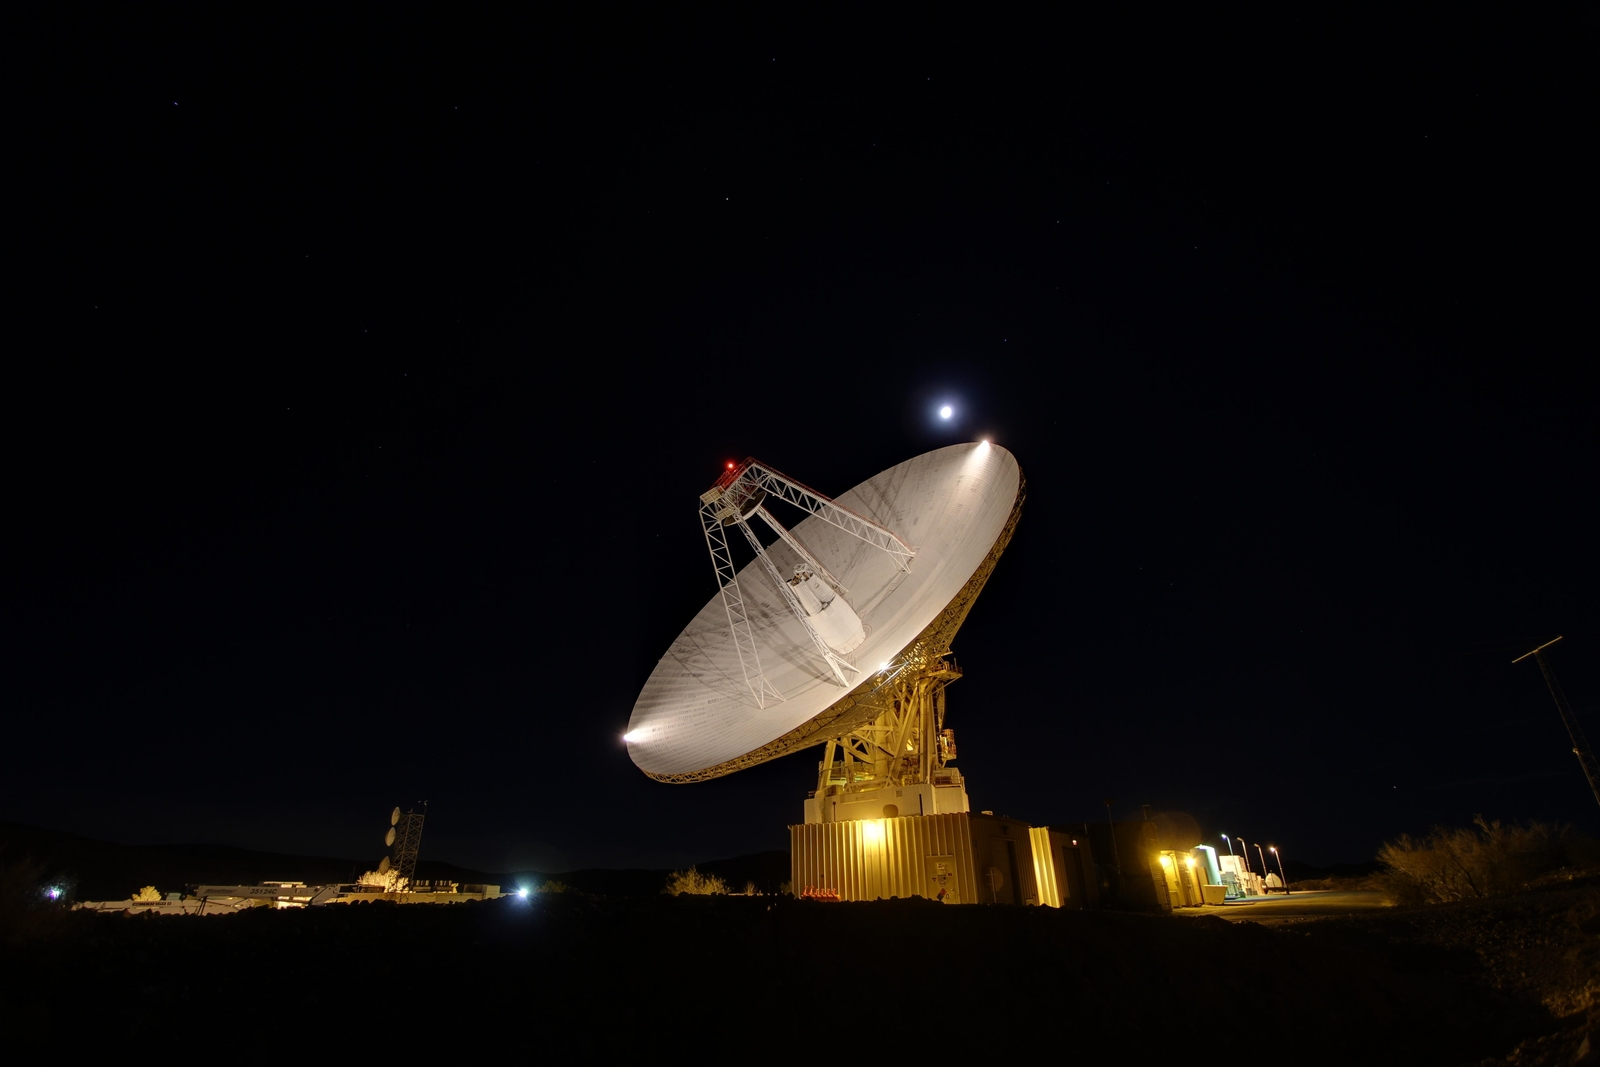 Goldstone's 230-foot (70-m) antenna tracks under a full moon. This photograph was taken on Jan. 11, 2012.